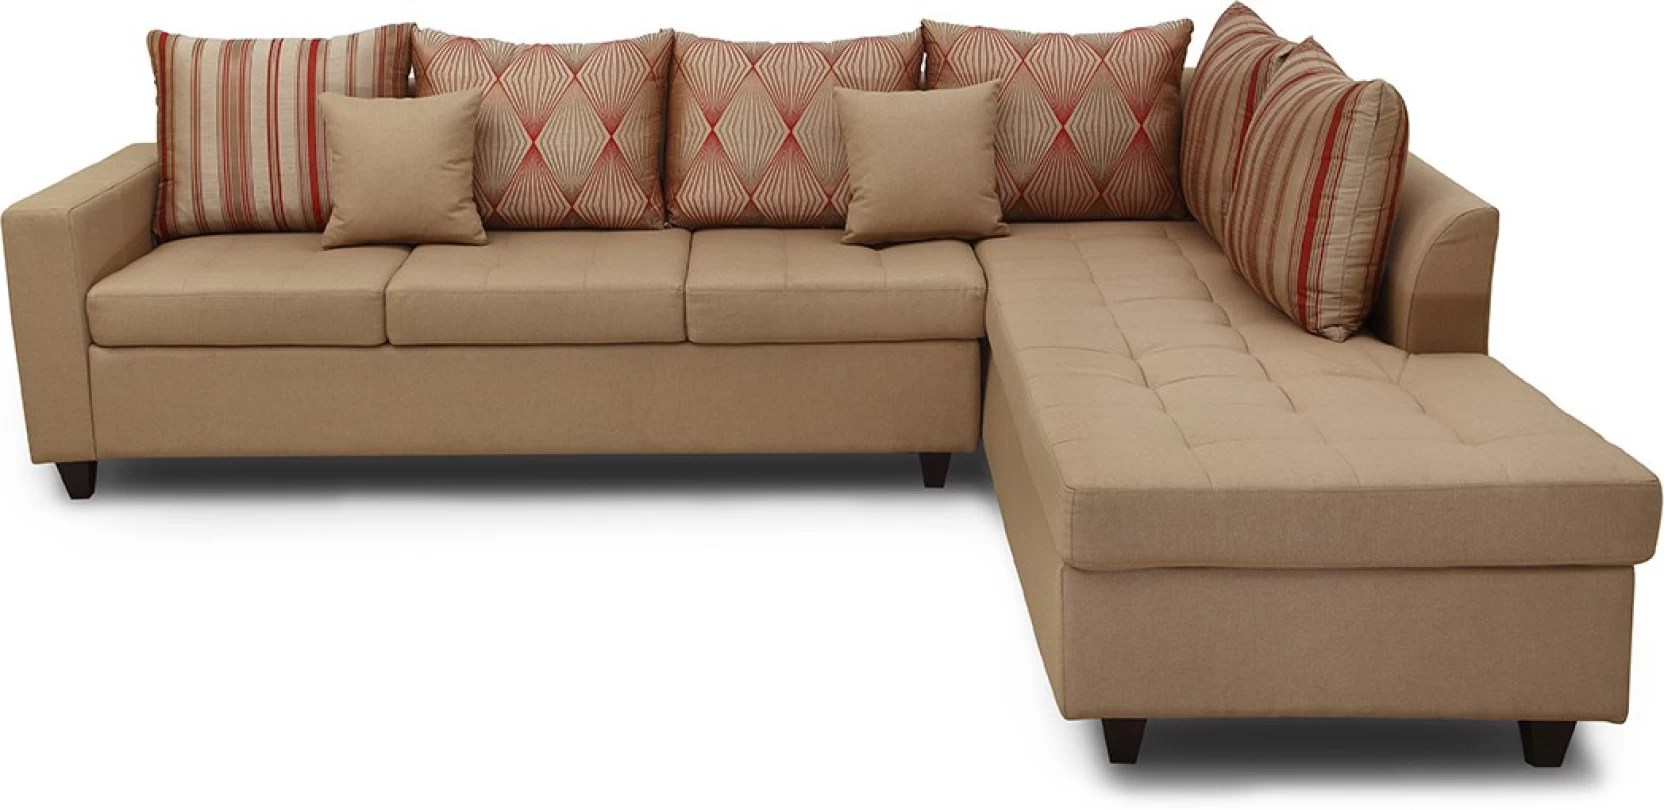 stanley sofa cost india handy living beaumont linen hometown belmont lhs fabric 6 seater modular price in